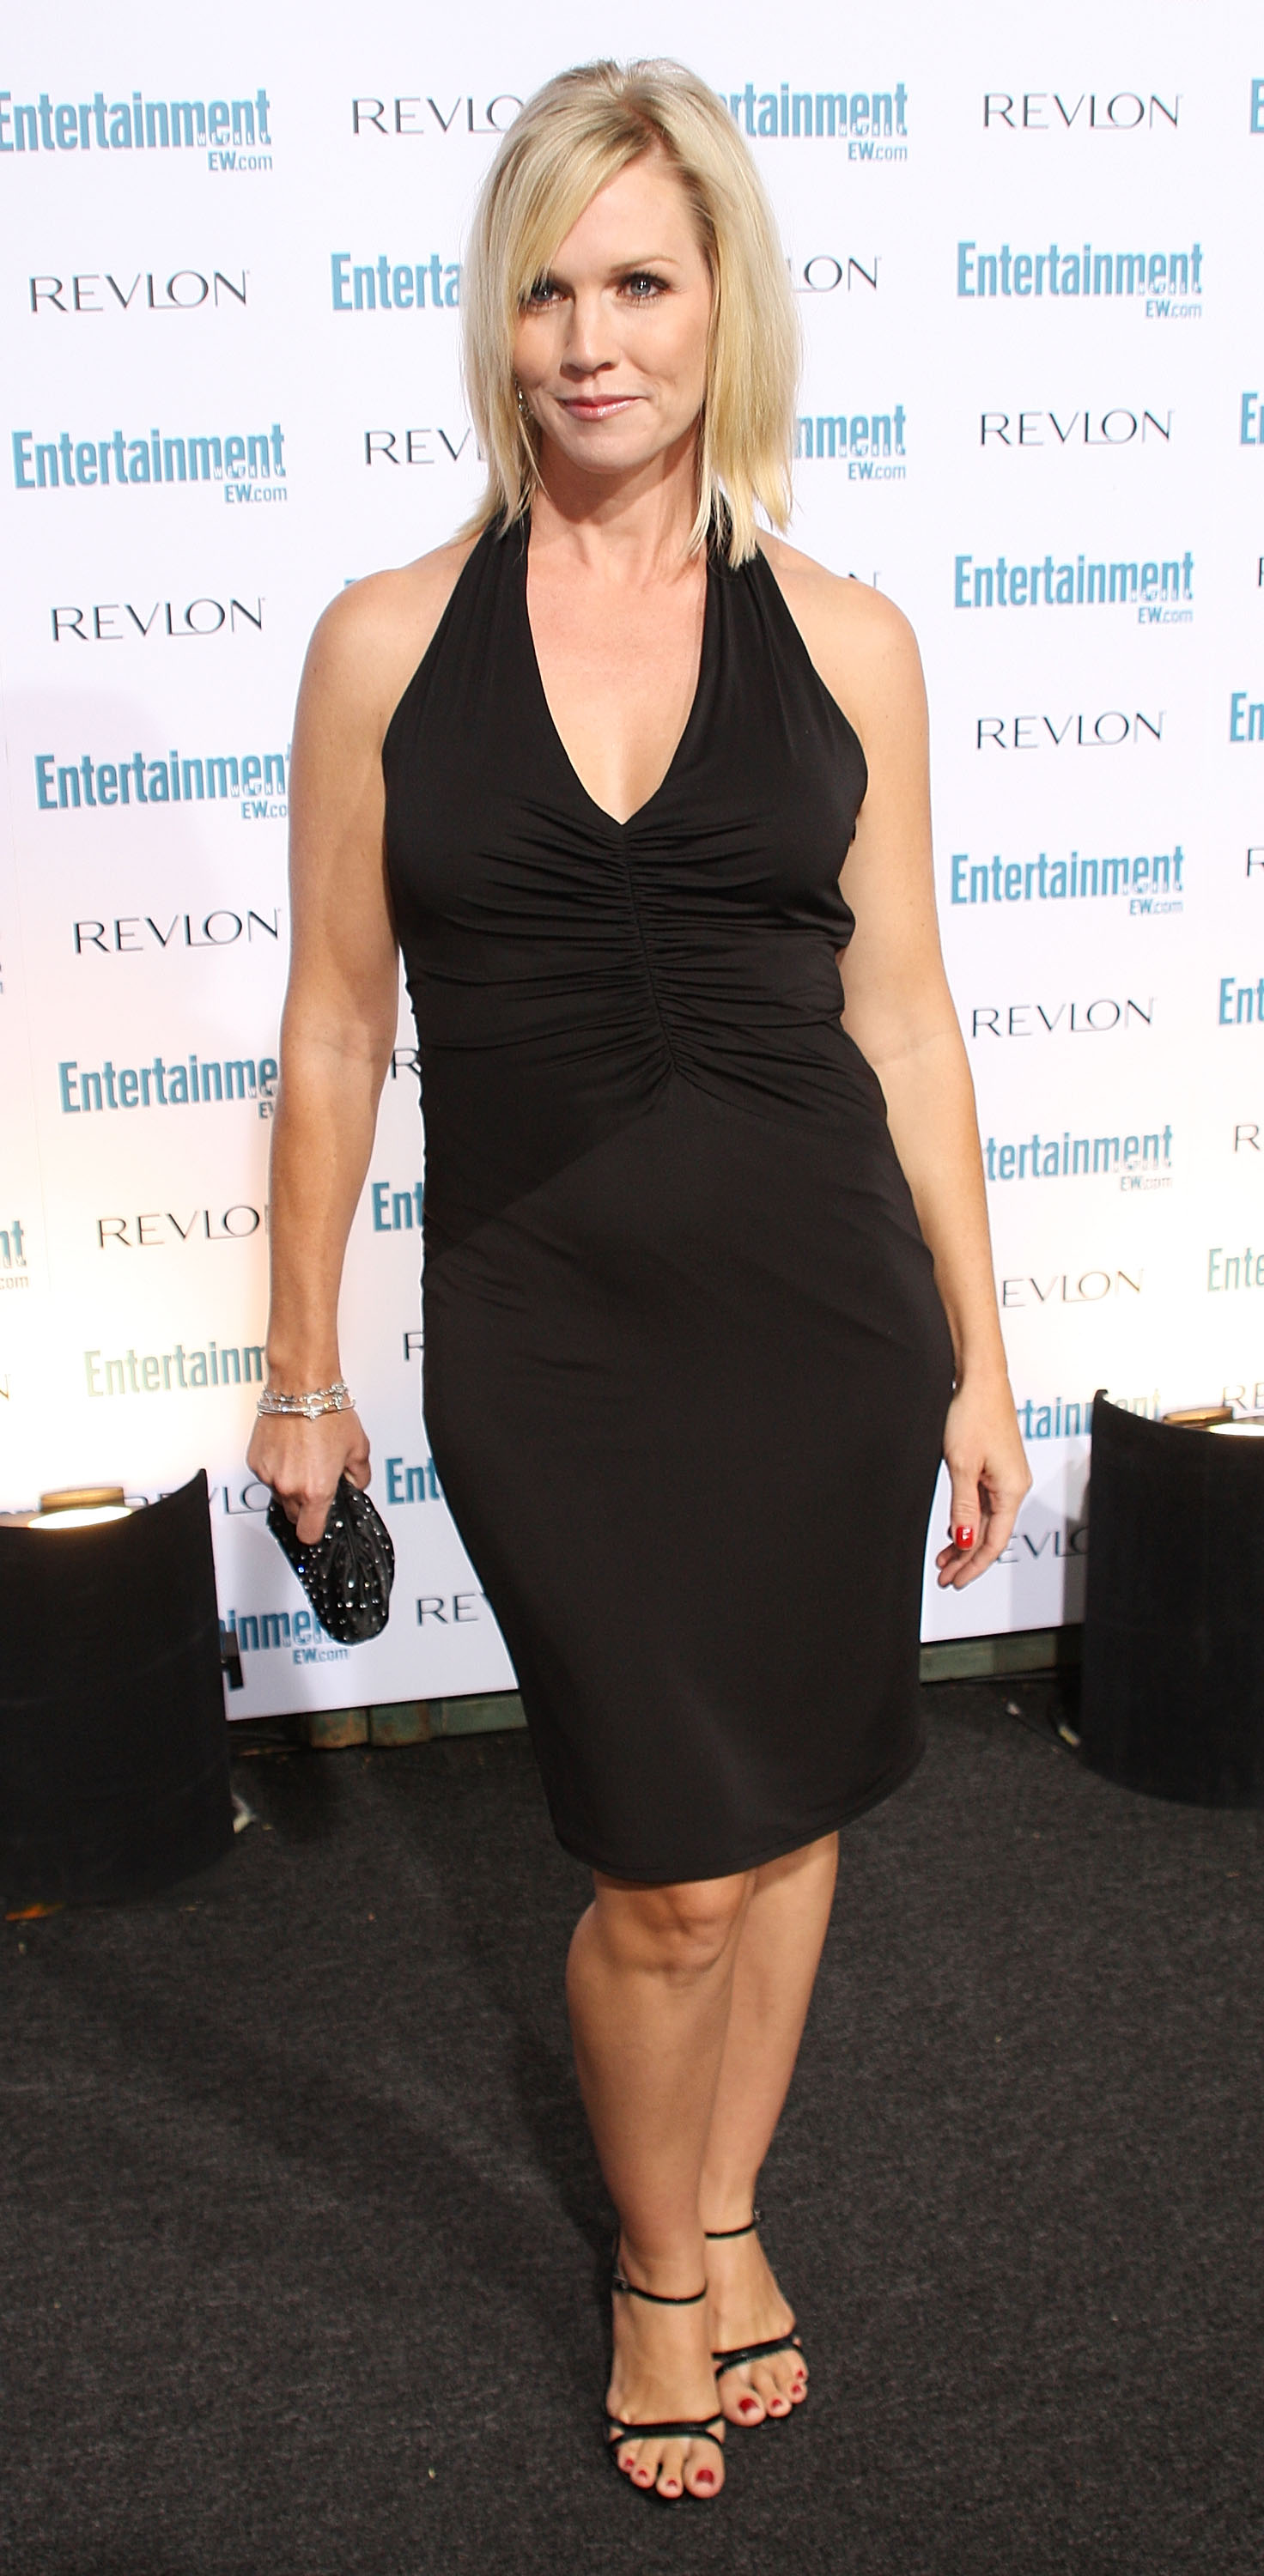 91182_Celebutopia-Jennie_Garth-Entertainment_Weekly6s_Sixth_Annual_Pre-Emmy_Celebration_party-03_122_259lo.jpg